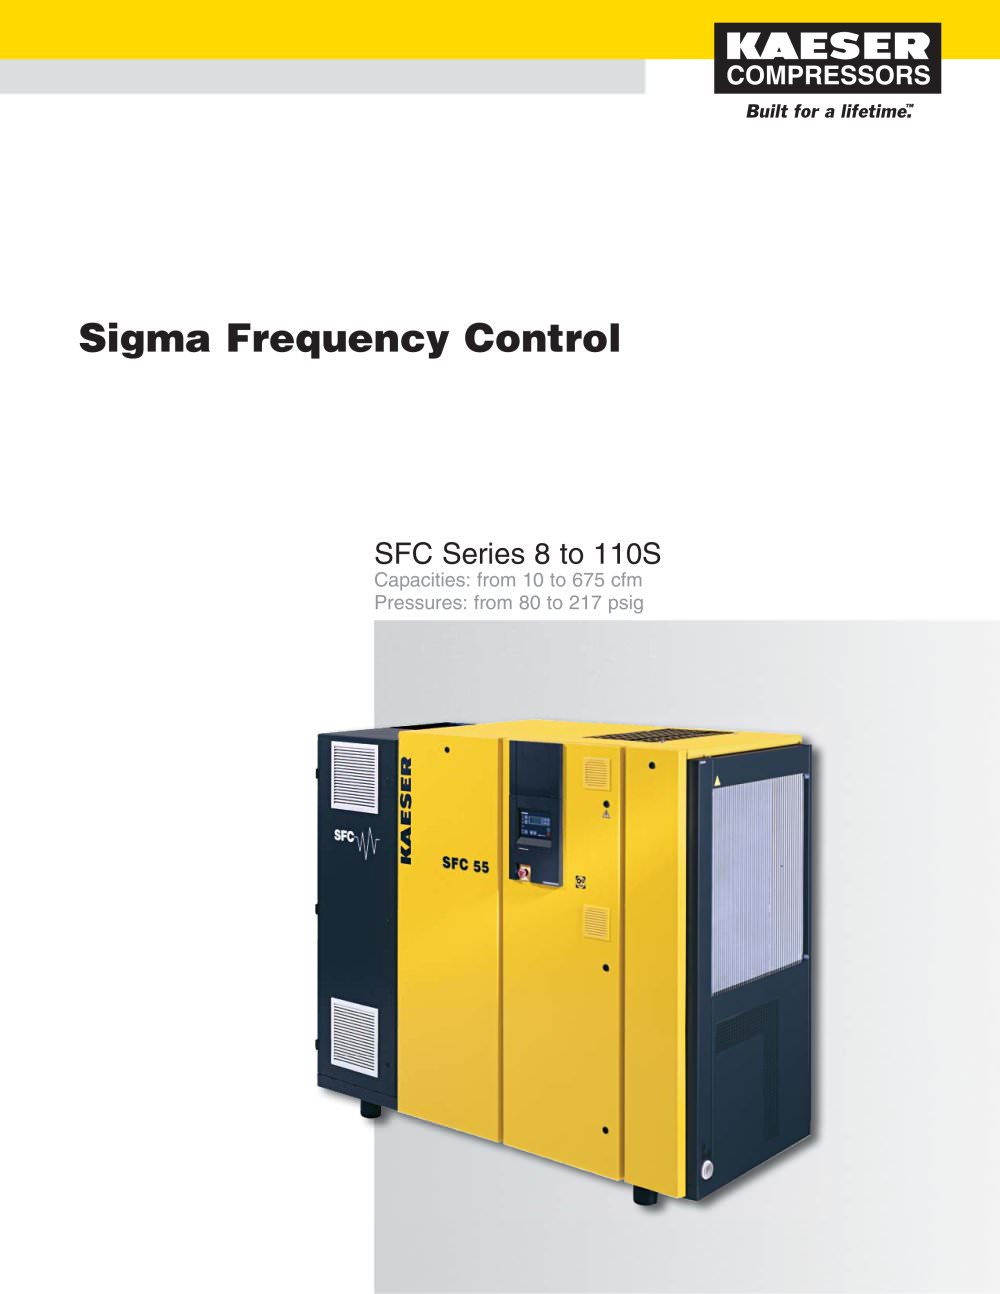 SFC Series Compressors 8 to 110S - 1 / 6 Pages